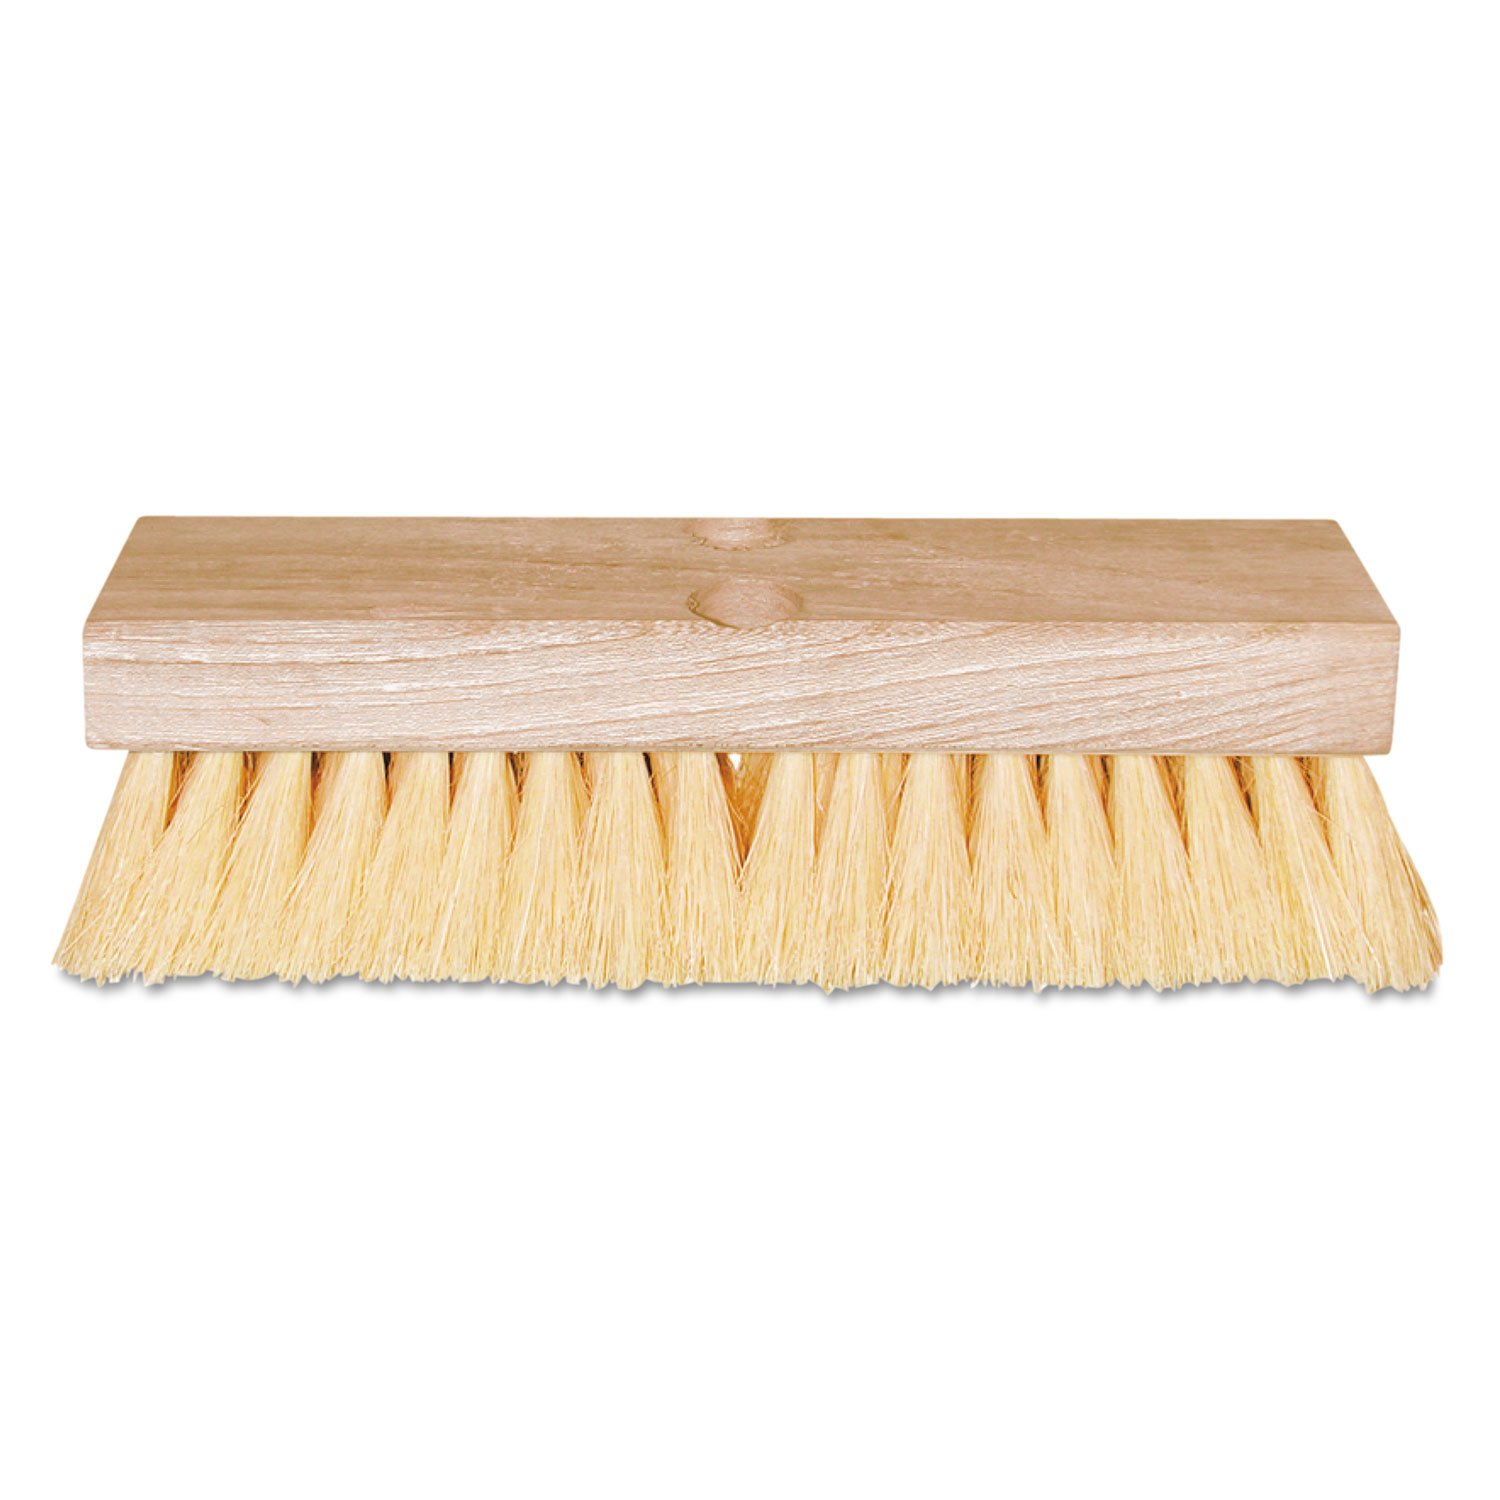 Deck Scrub Brushes - 210 ors 10'' deck brush w/5s handle [Set of 12]